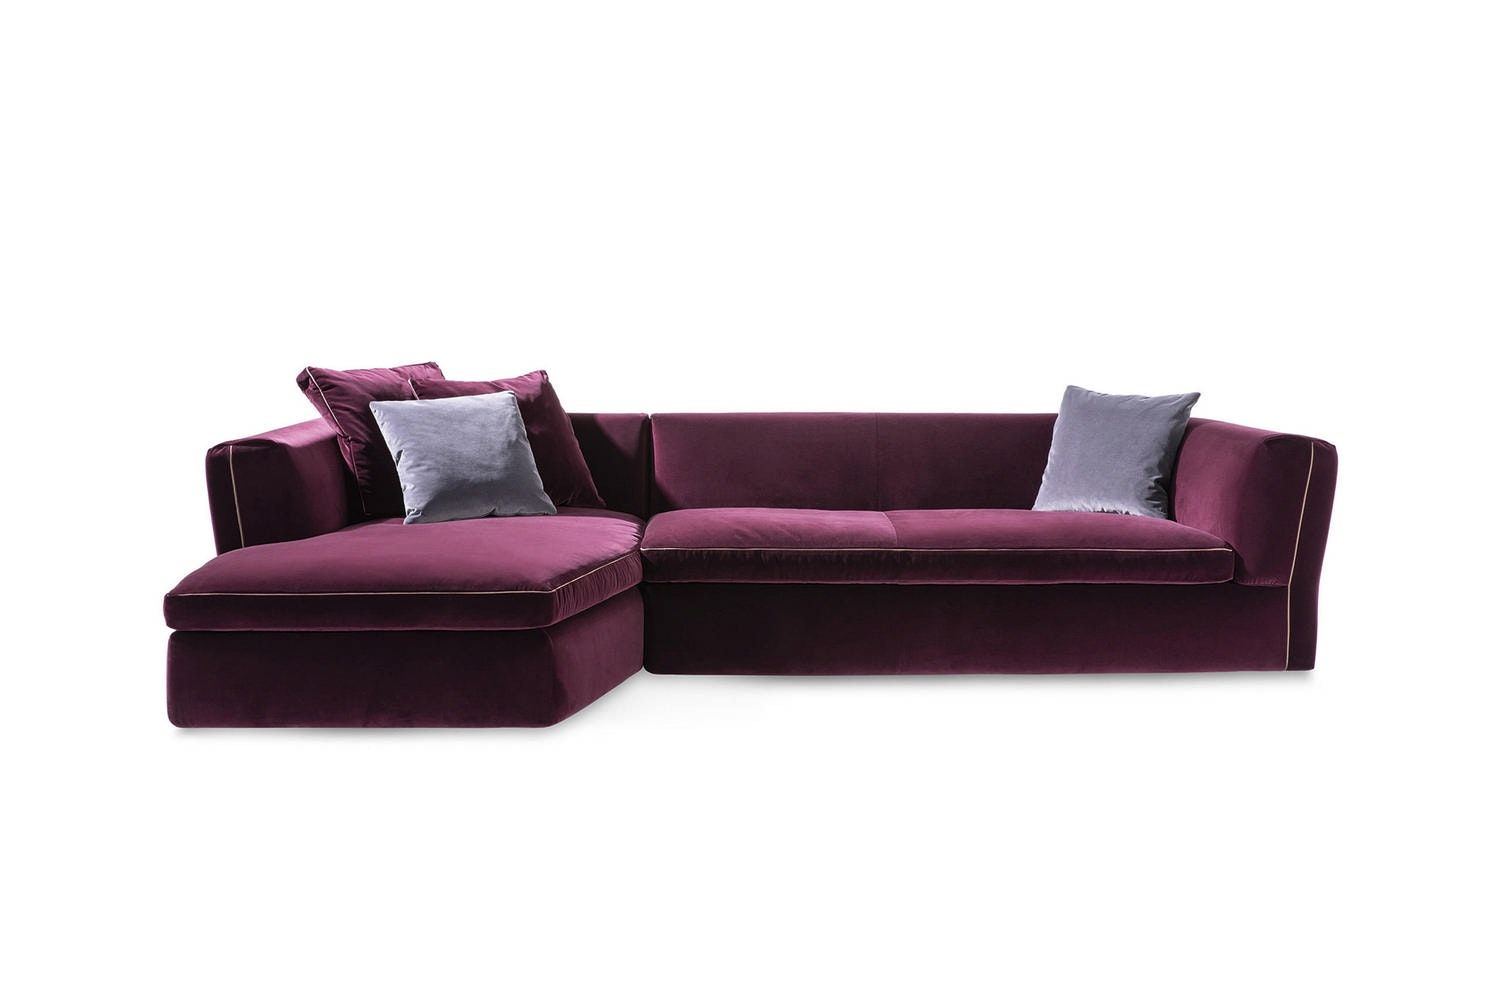 291 Dress-Up! Sofa by Rodolfo Dordoni for Cassina